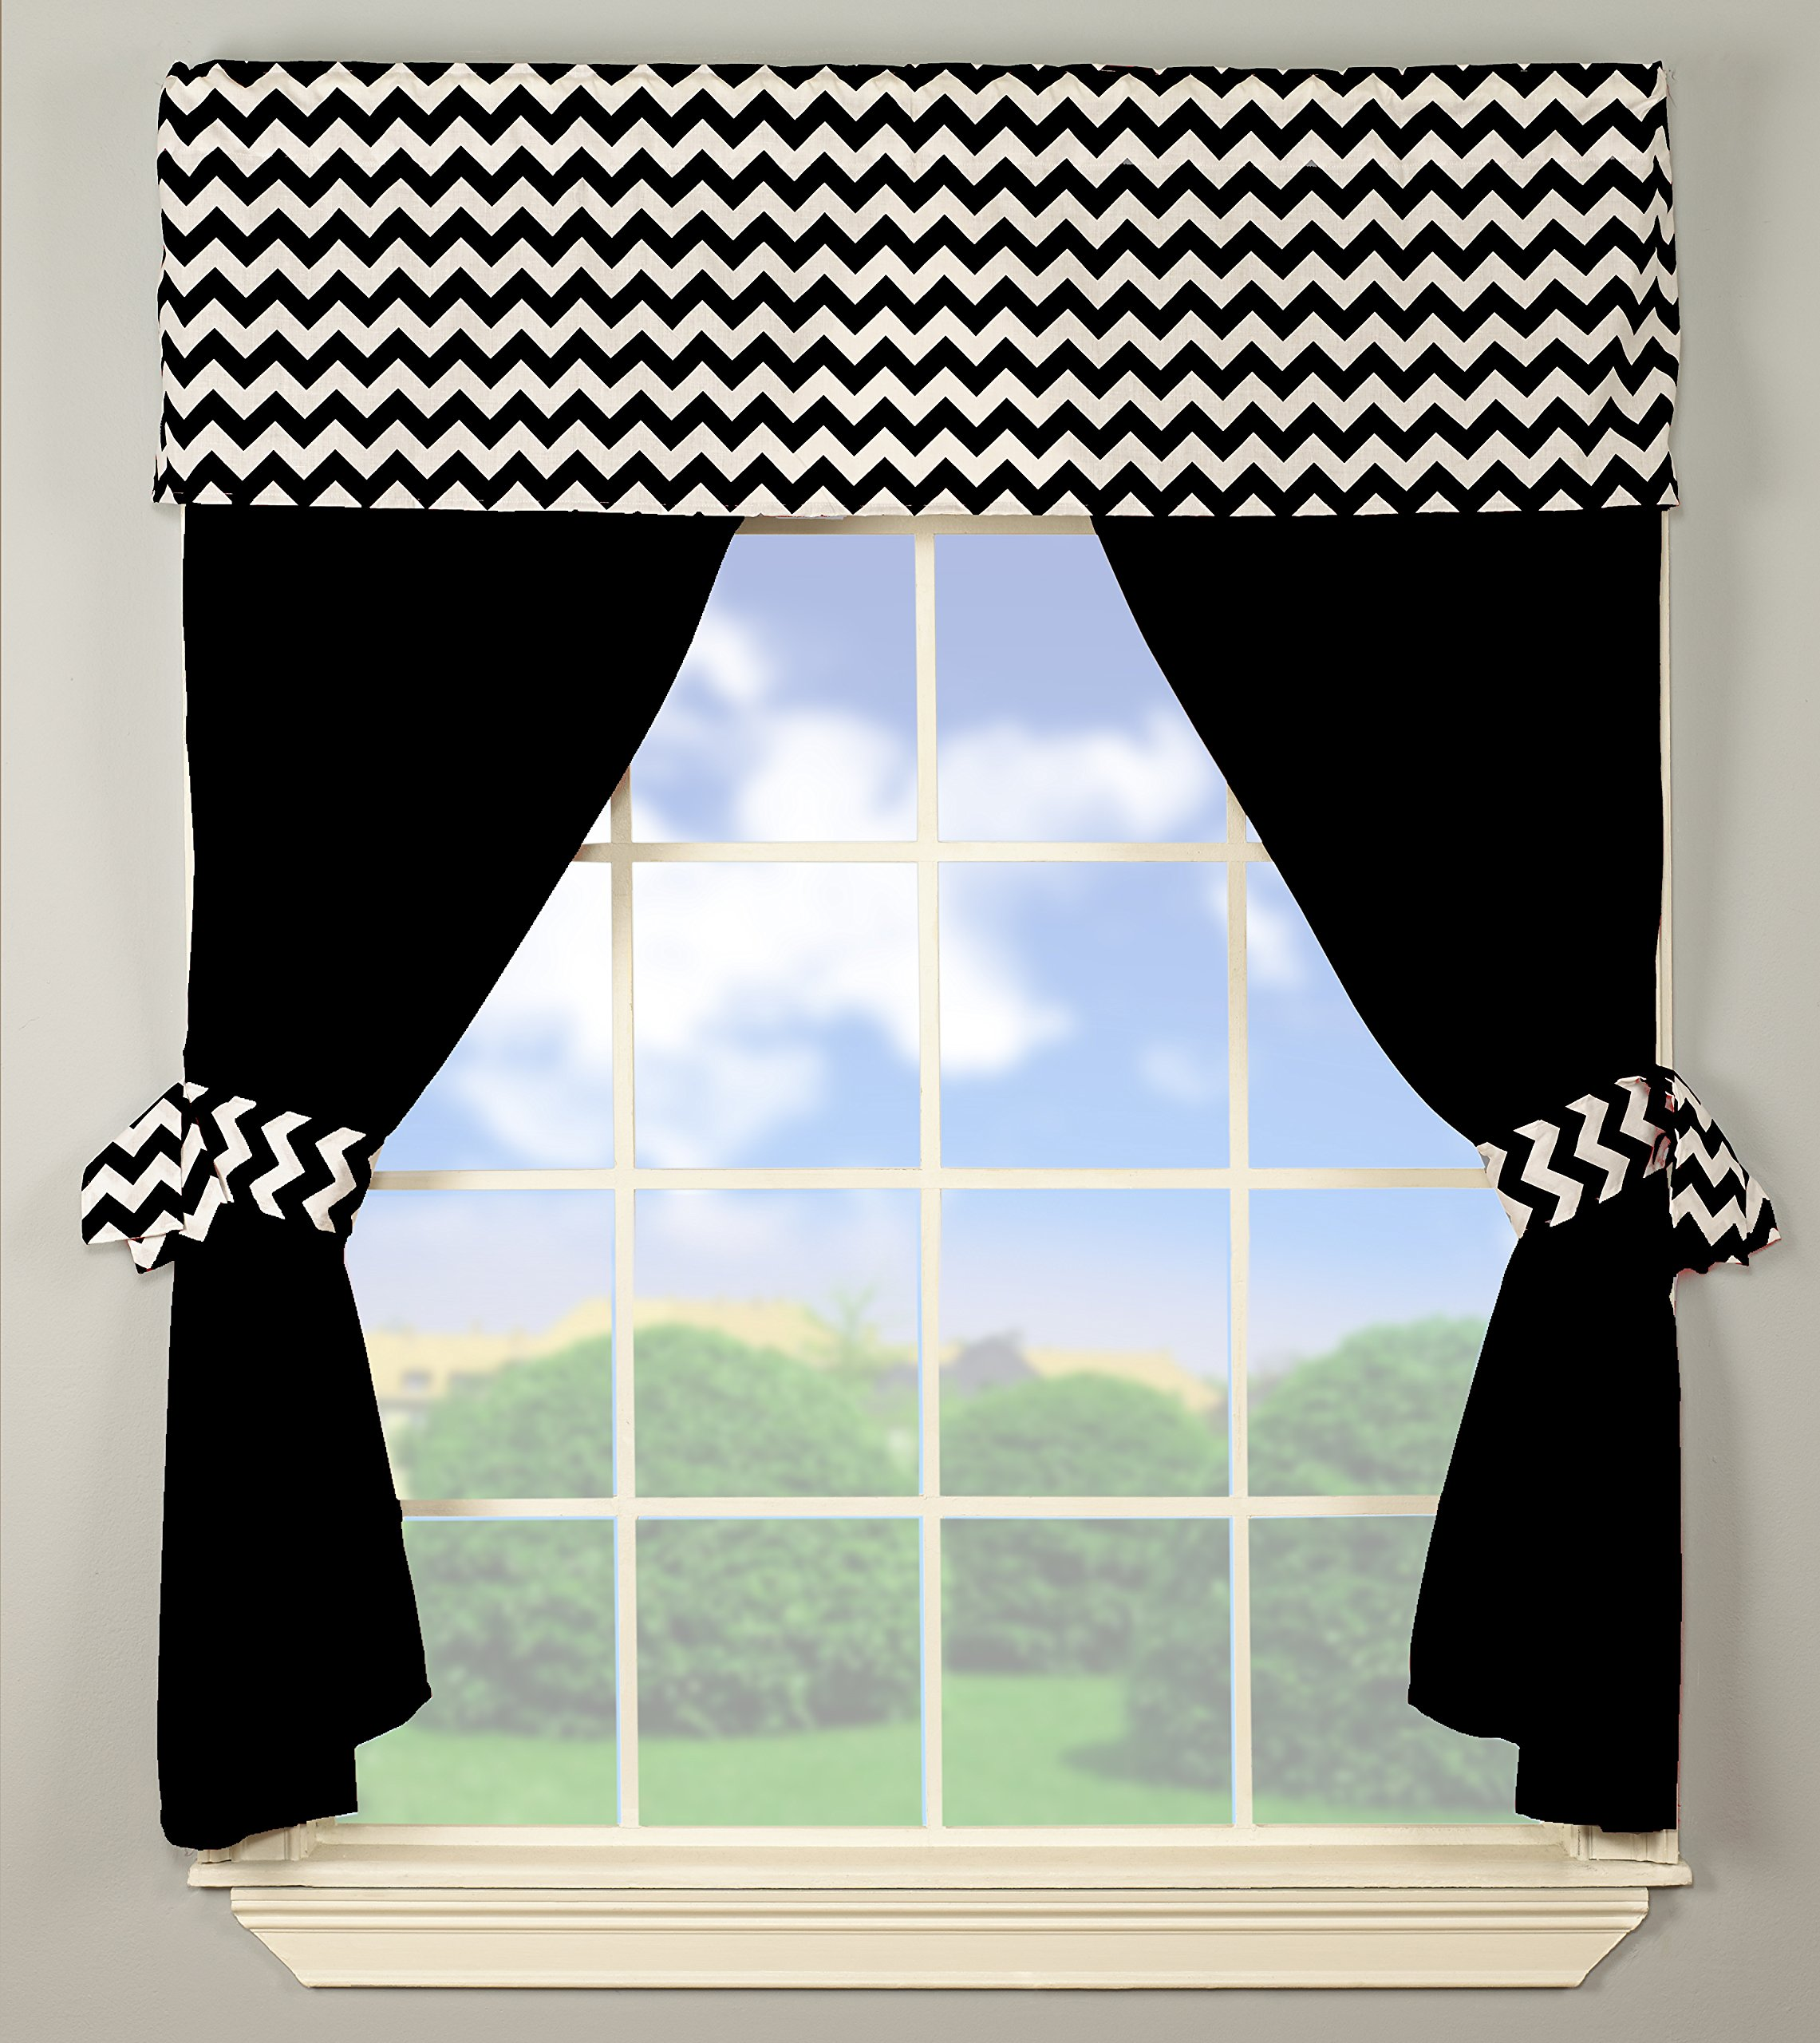 Baby Doll Bedding  Chevron Window Valance and Curtain Set, Black